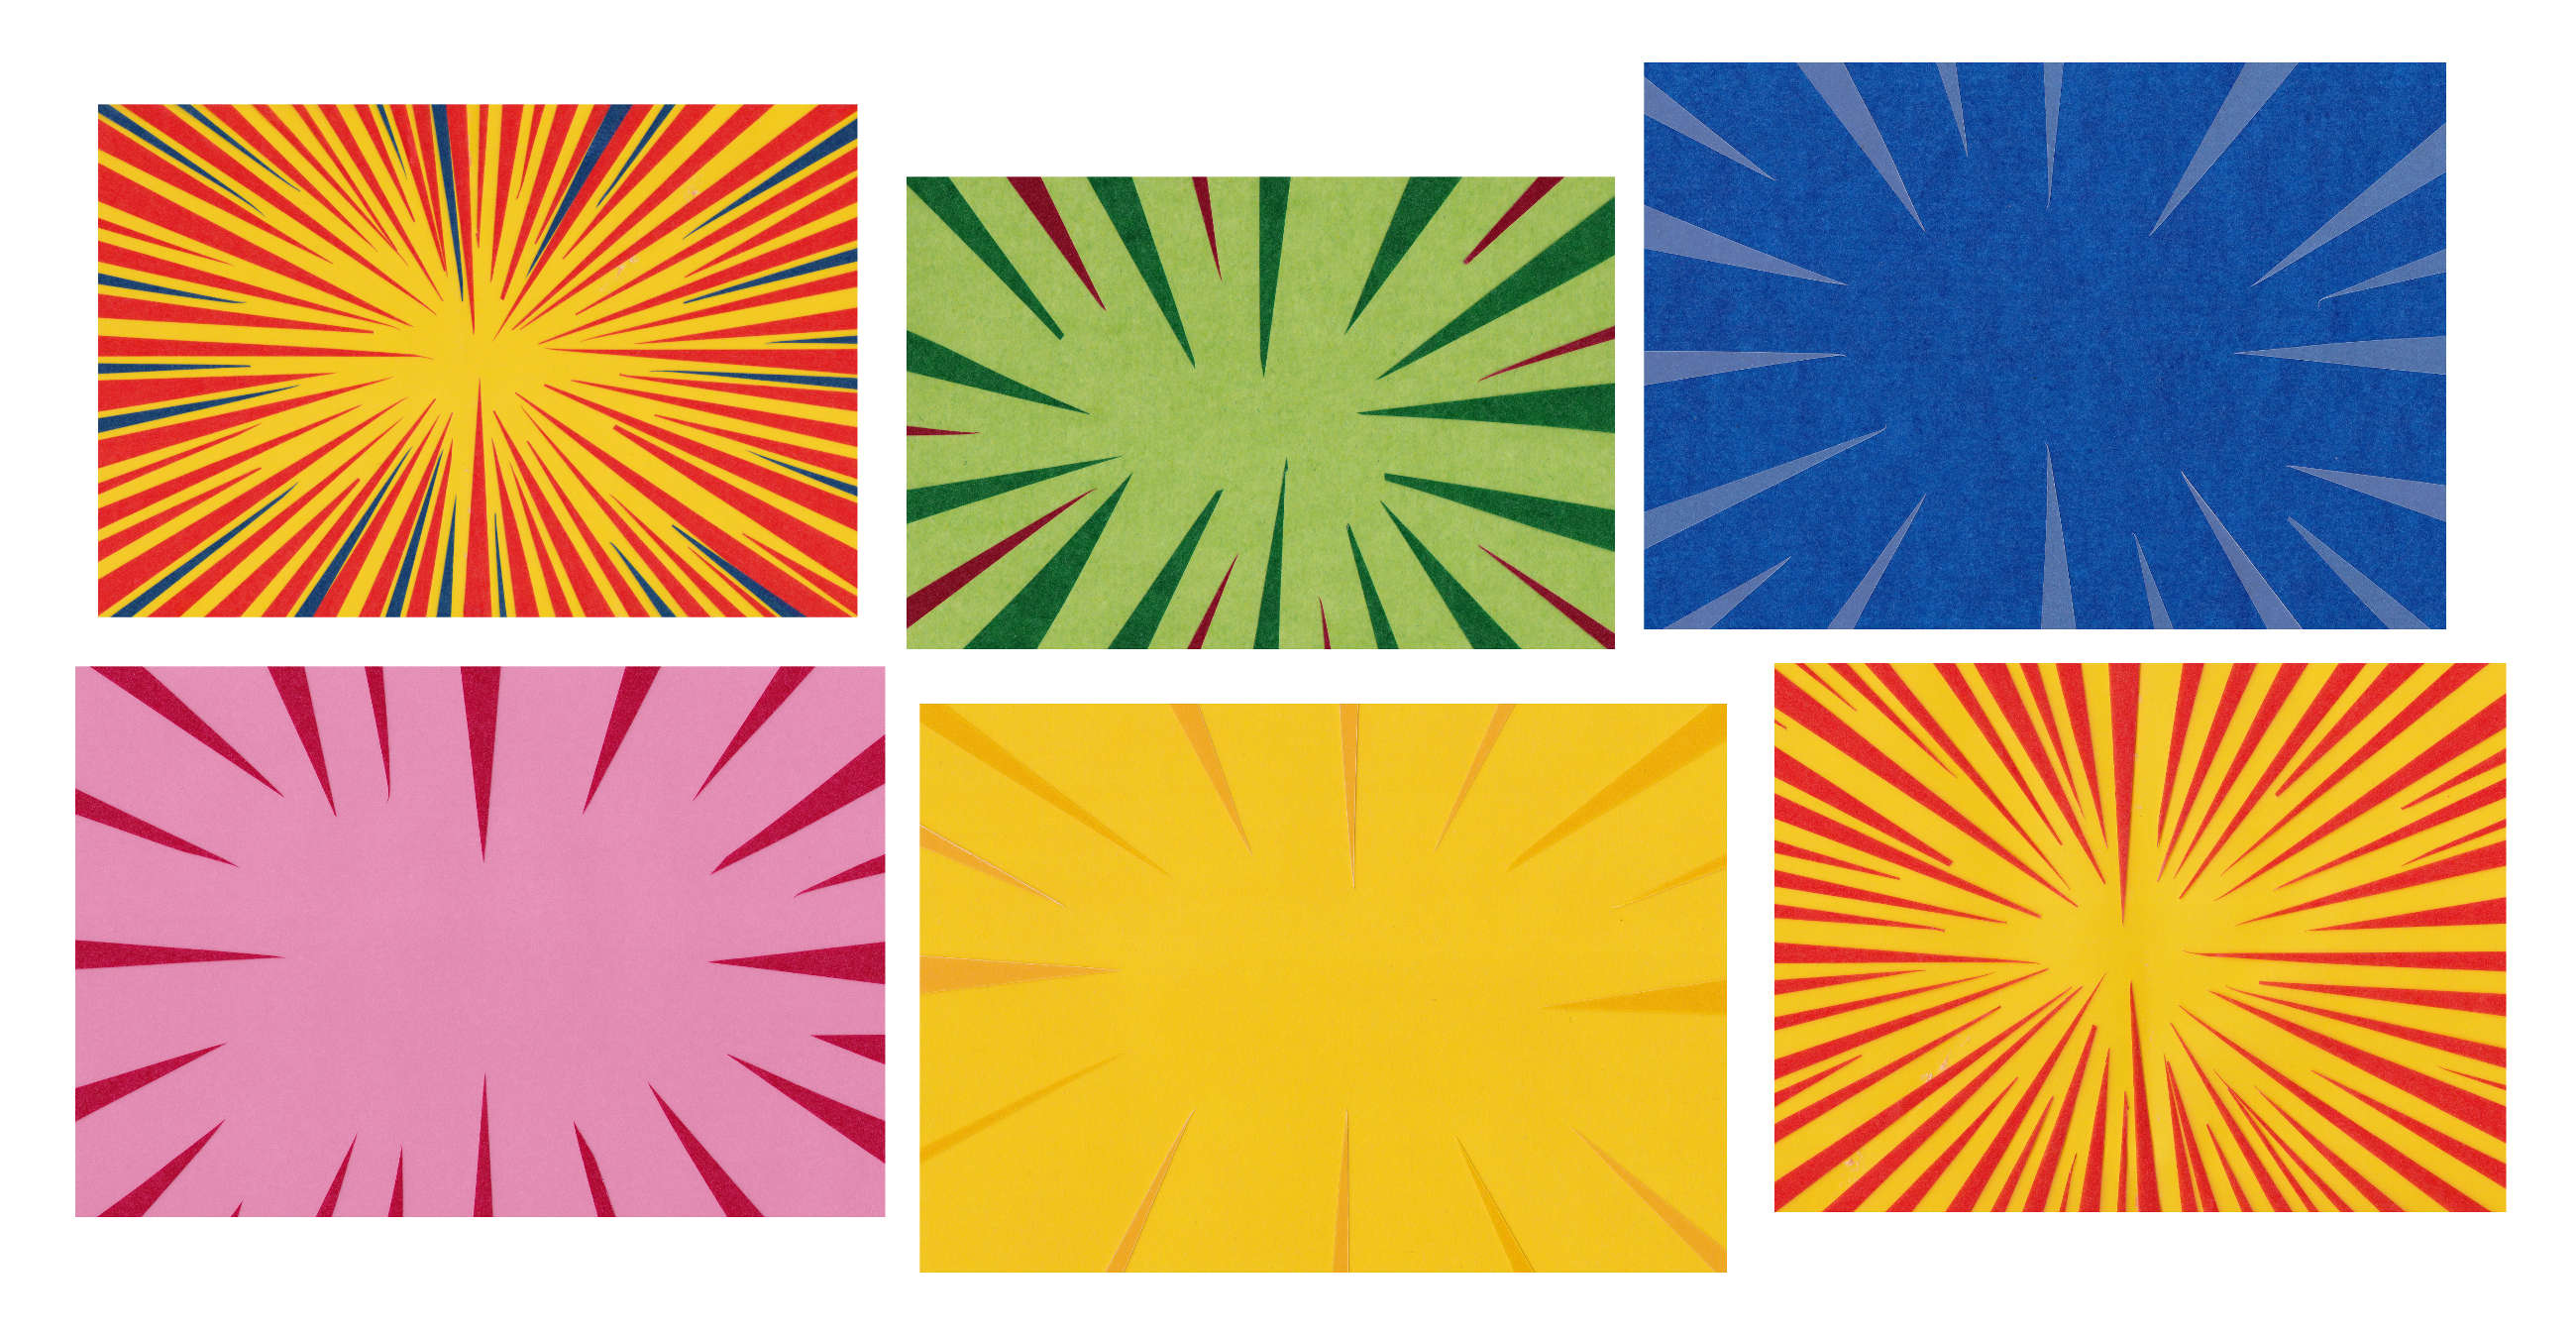 6-rectangle-cartoon-radial-background-cover.jpg